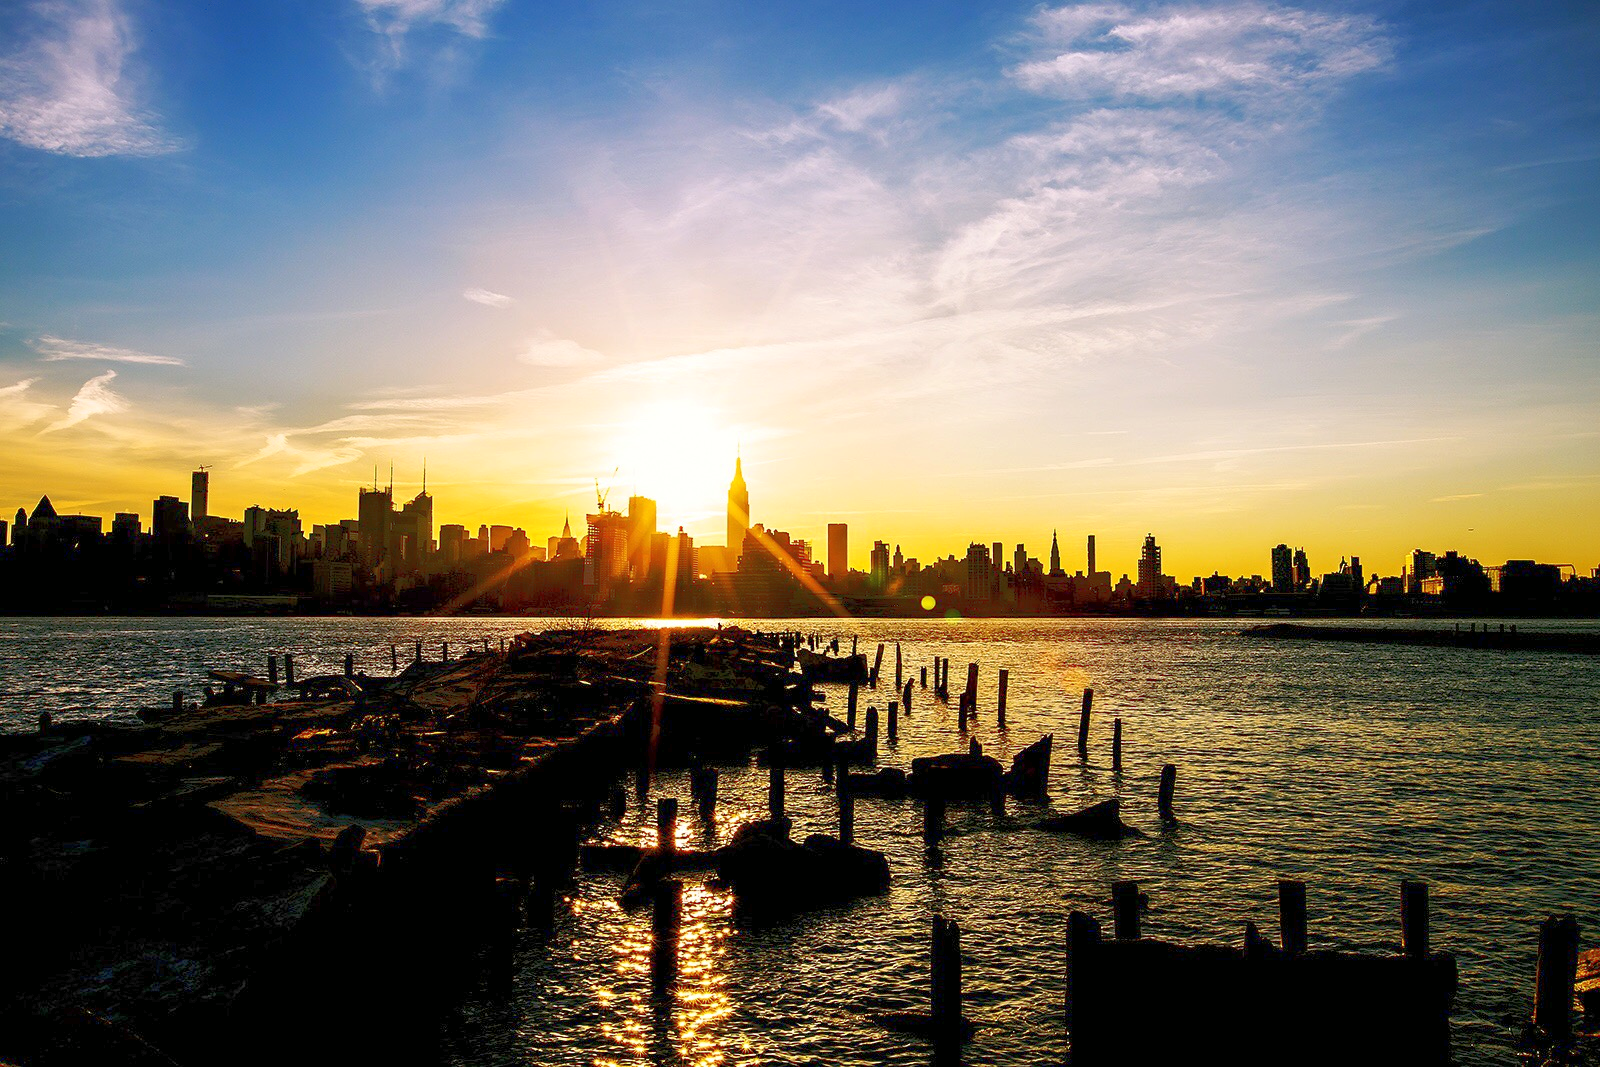 Sunrise and Manhattan skyline (the Empire State Building) from Hoboken waterfront